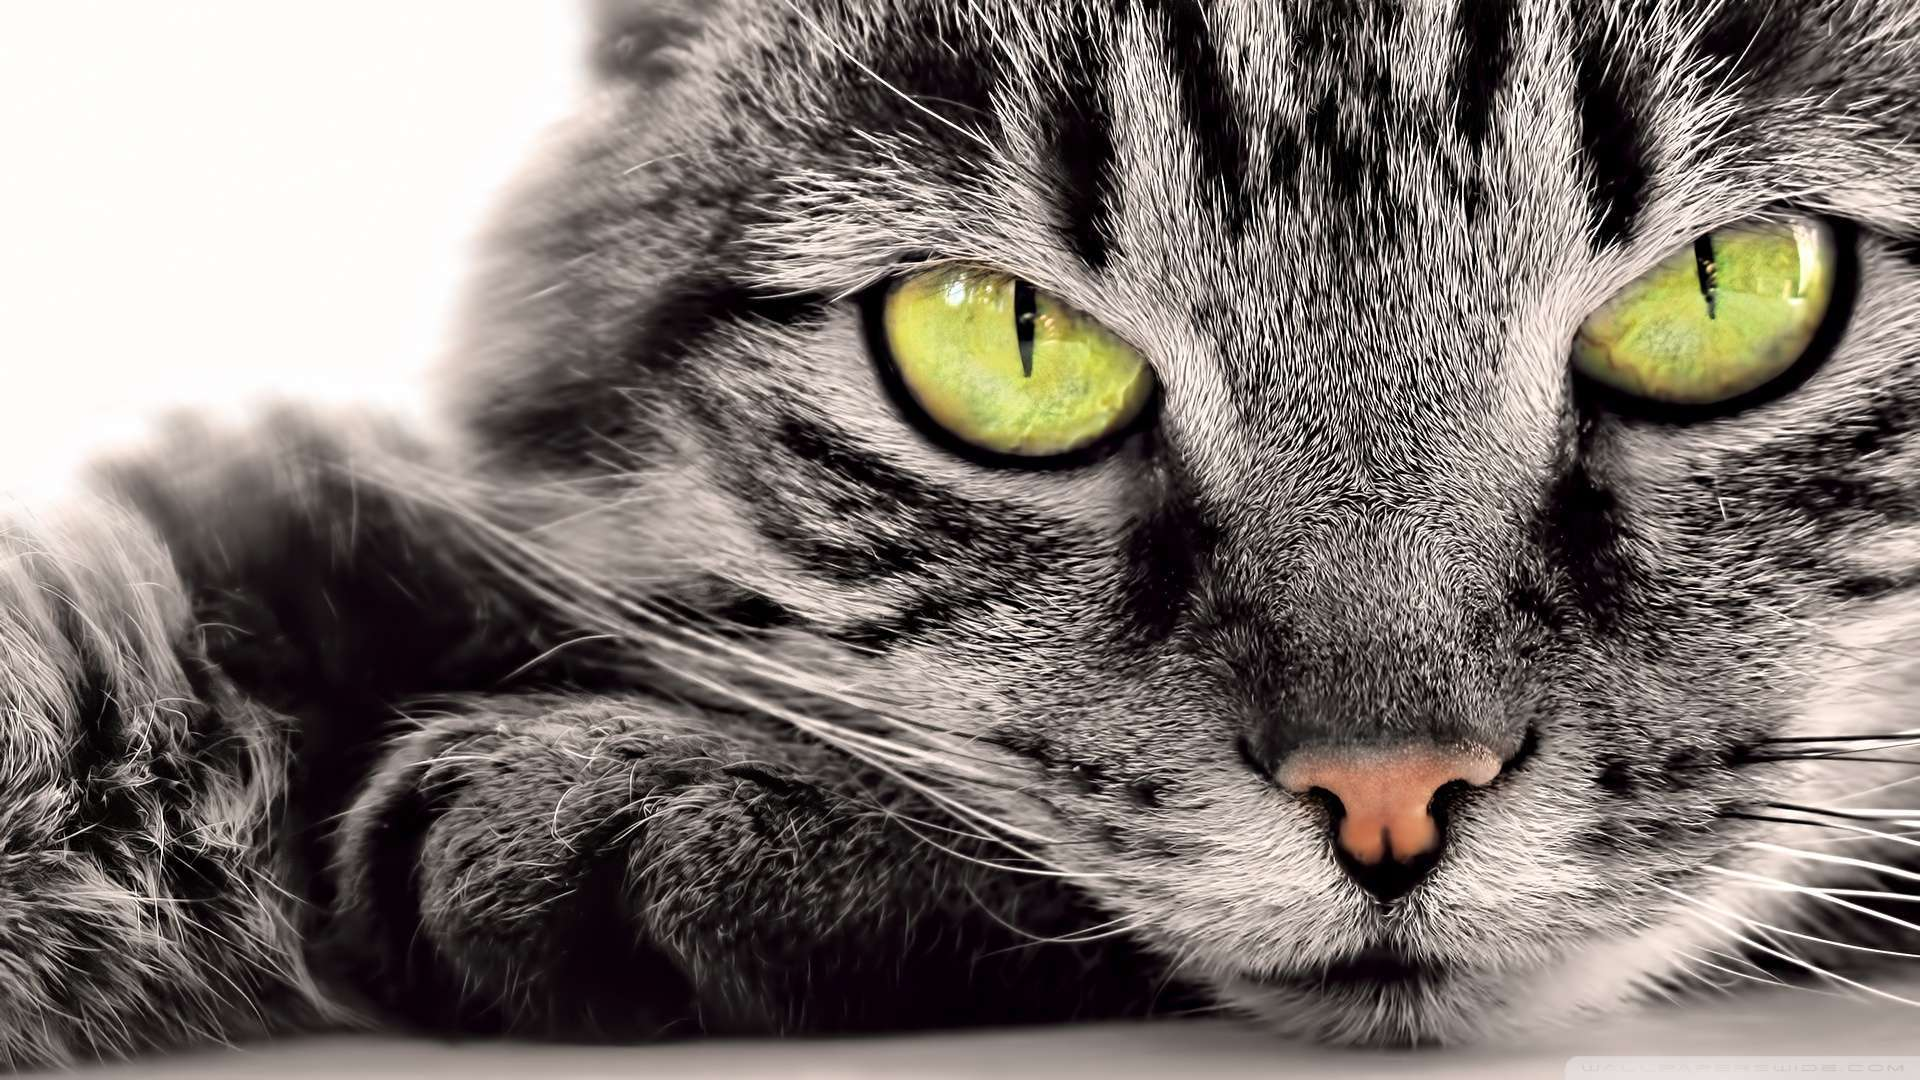 1080p Cat Wallpaper